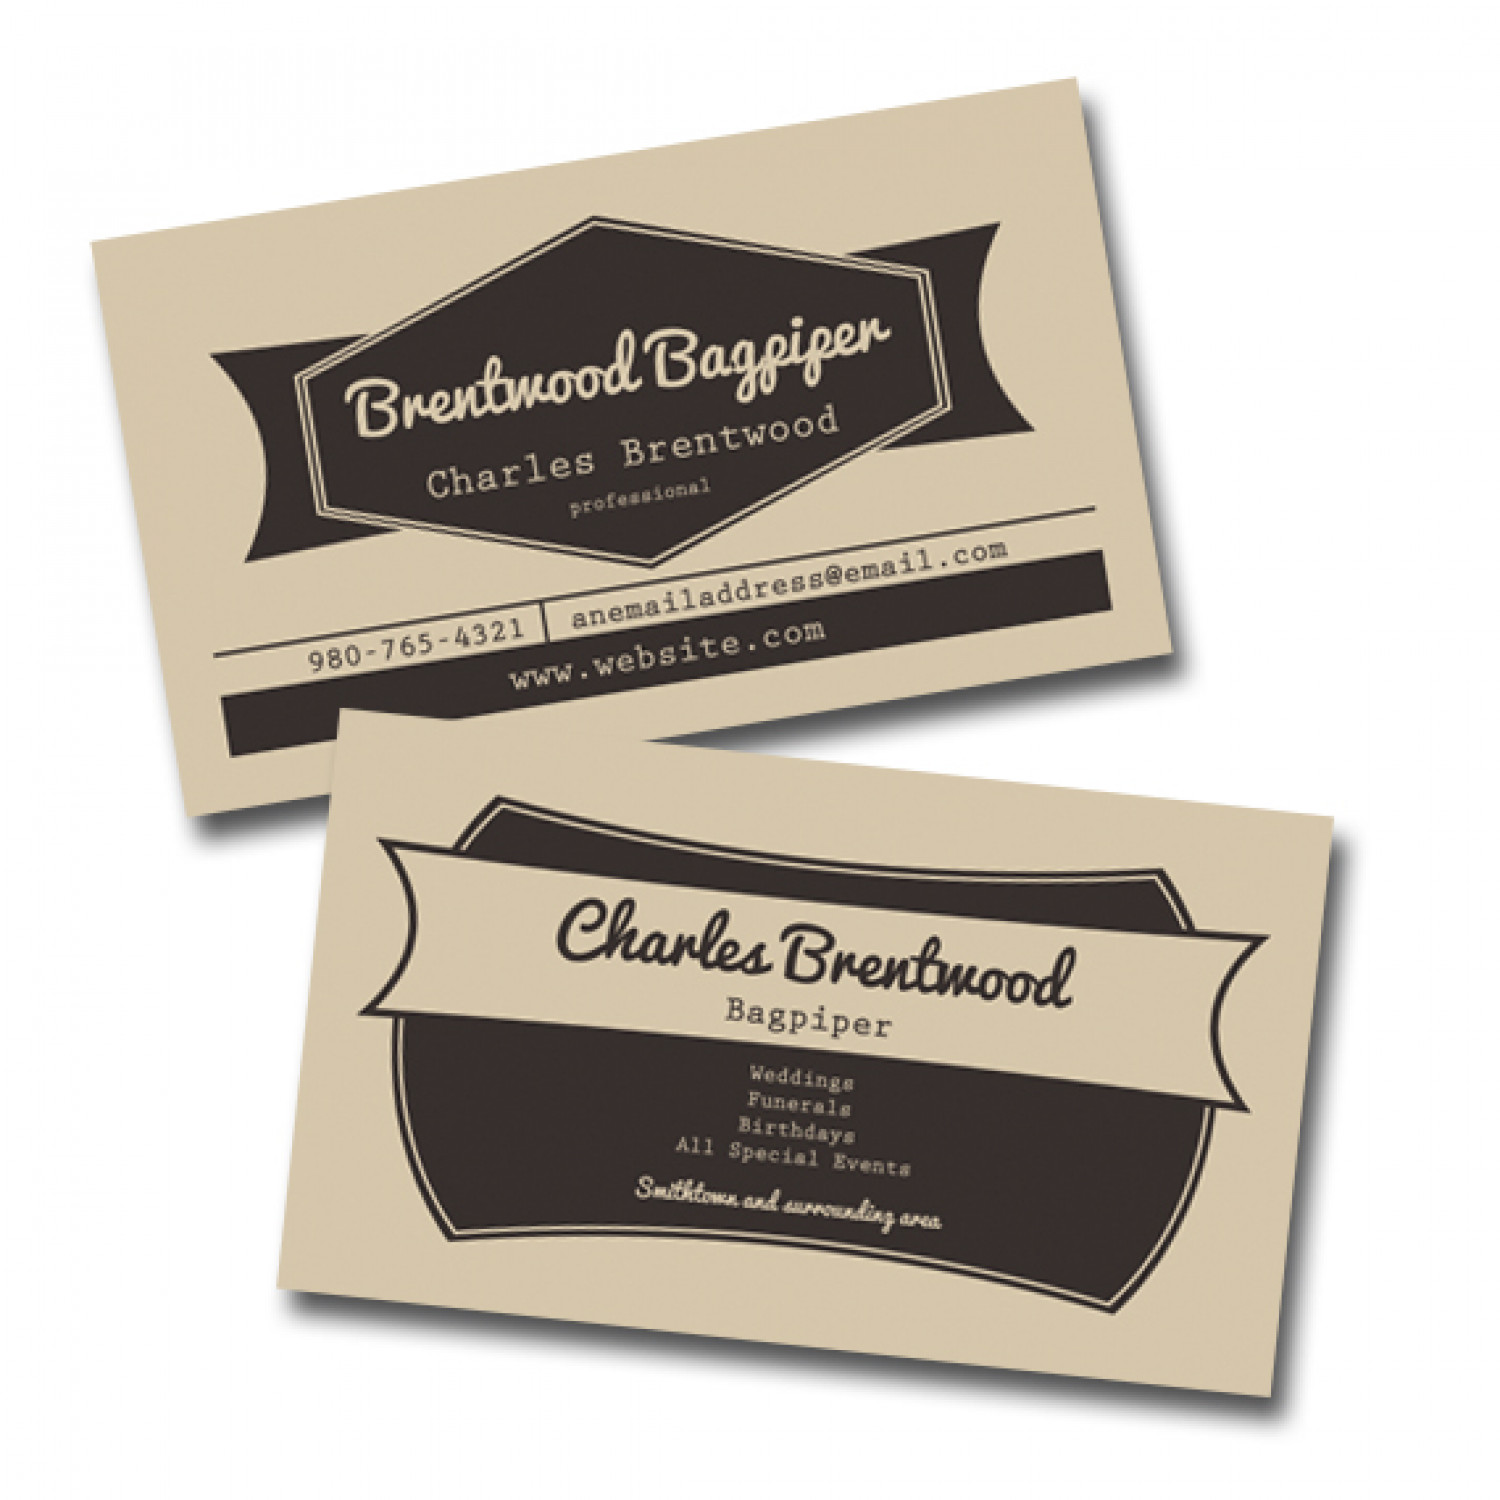 Vintage style business card | Visual.ly